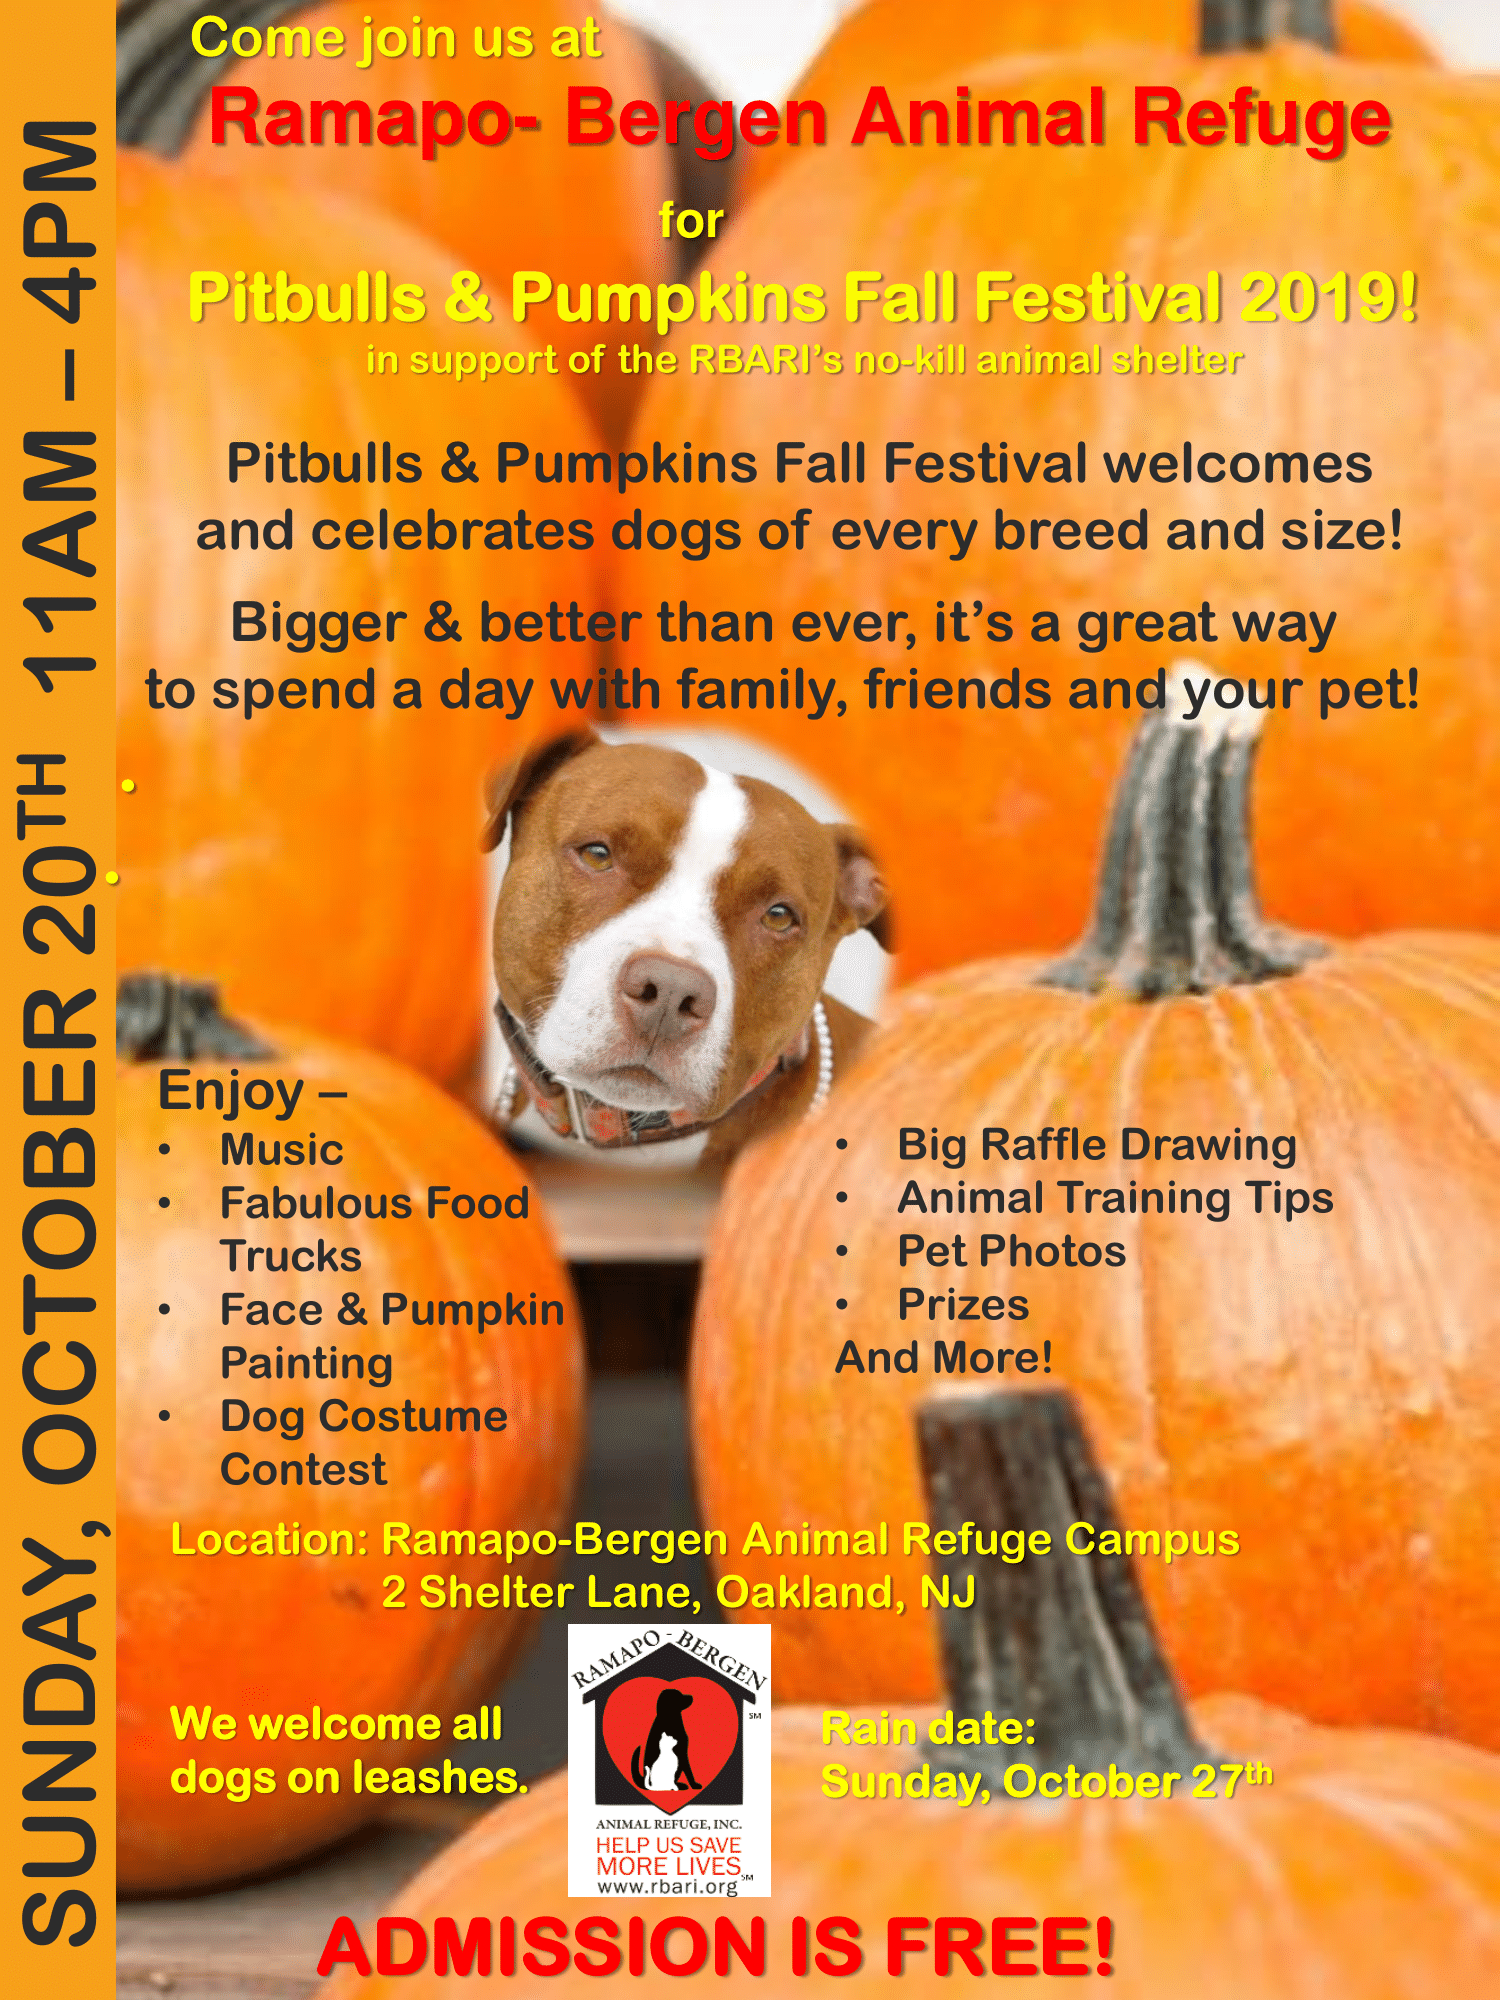 Pitbulls & Pumpkins Fair